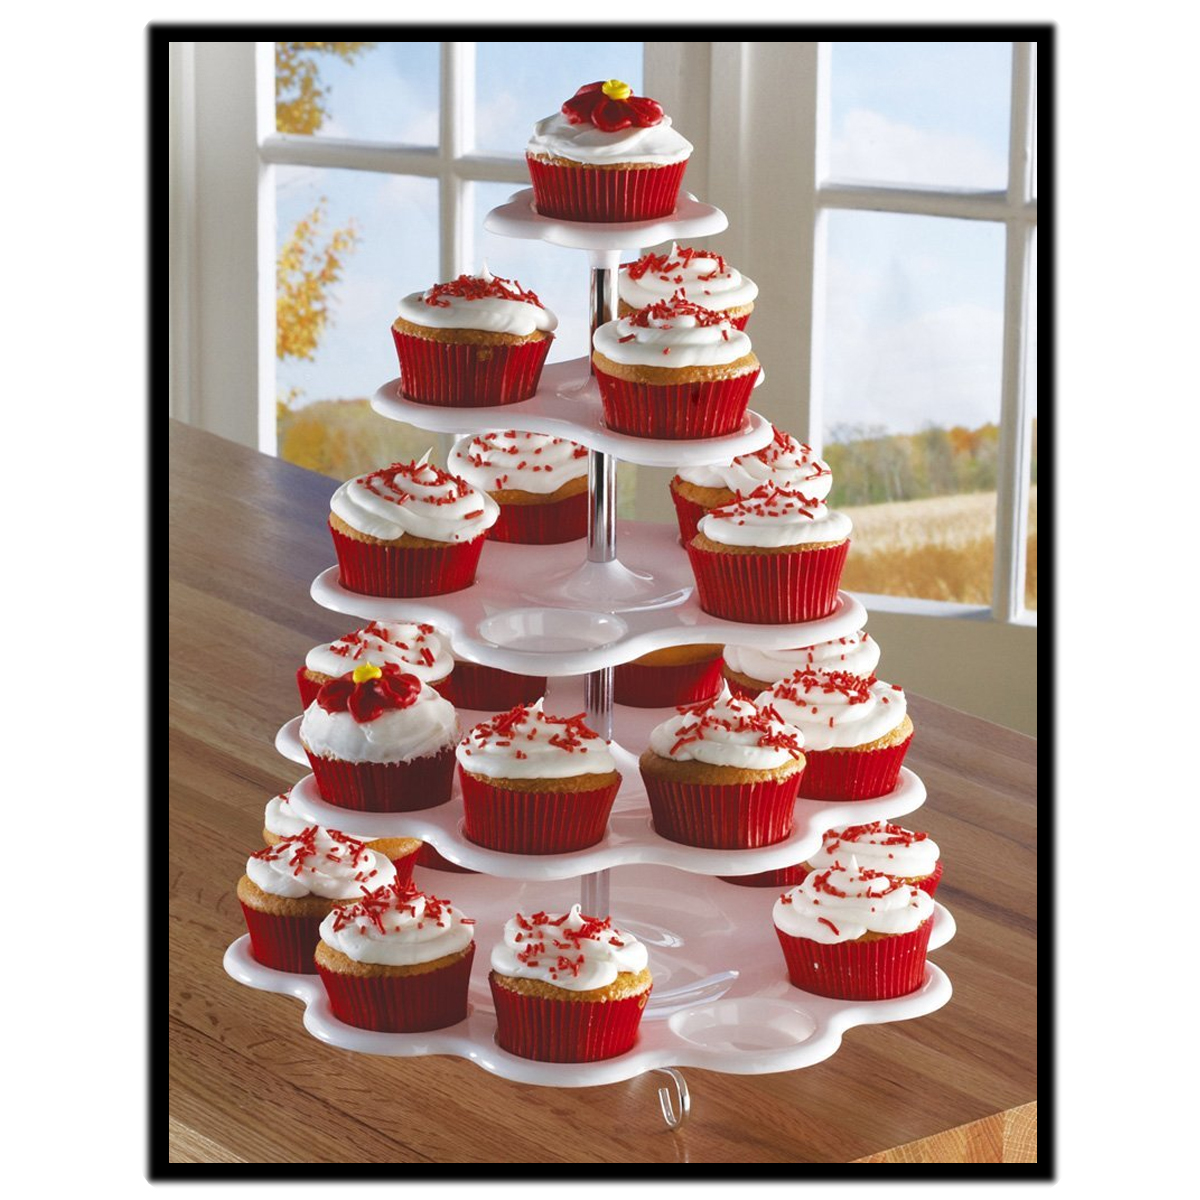 Wedding Cupcake Stands: 5-Tier White Plastic Cupcake Holder Display Stand Tower